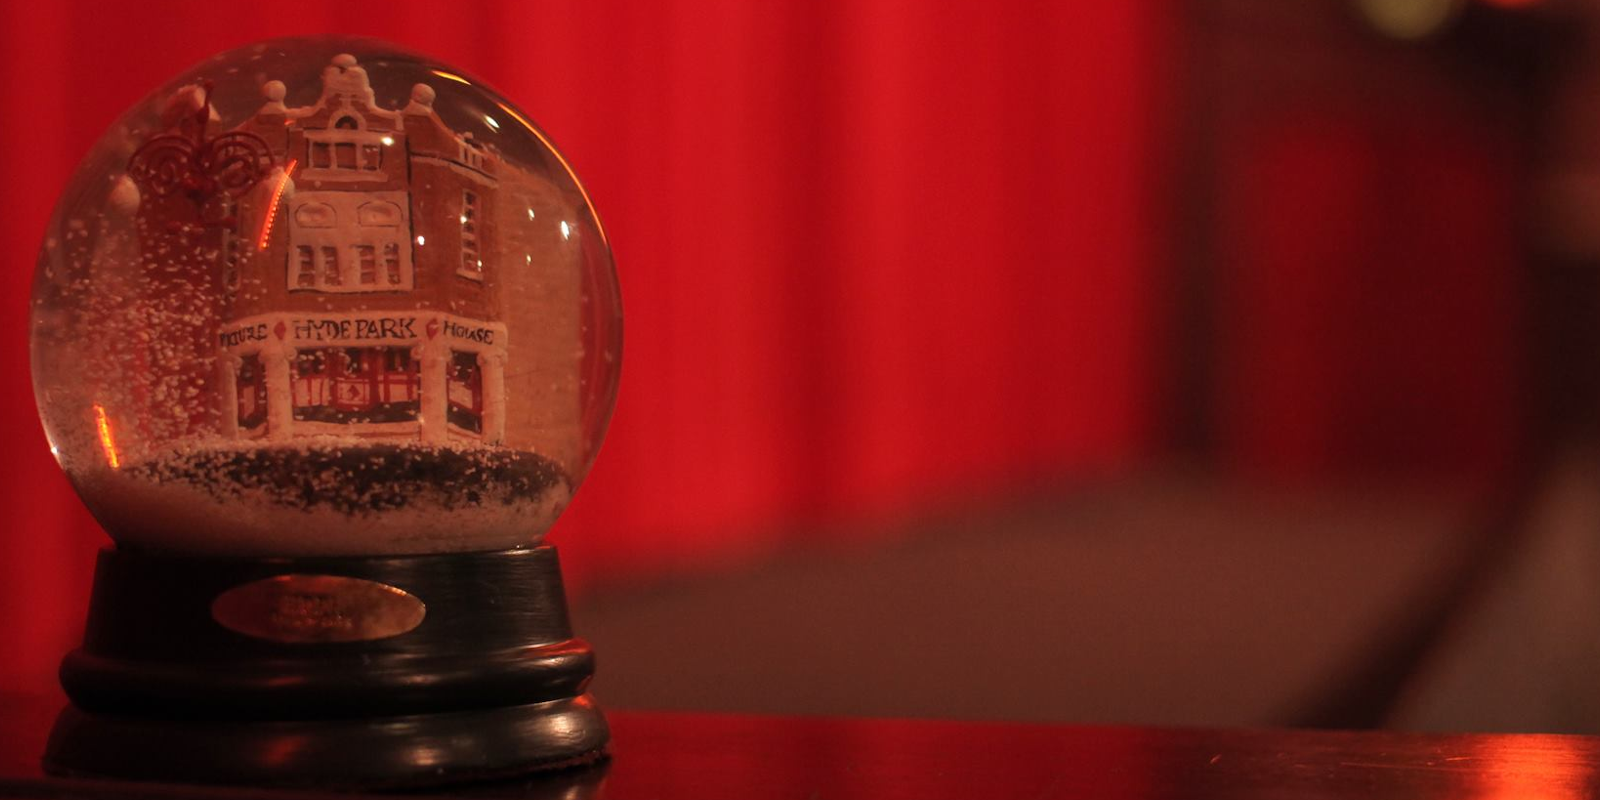 Snowglobe at Hyde Park Picture House